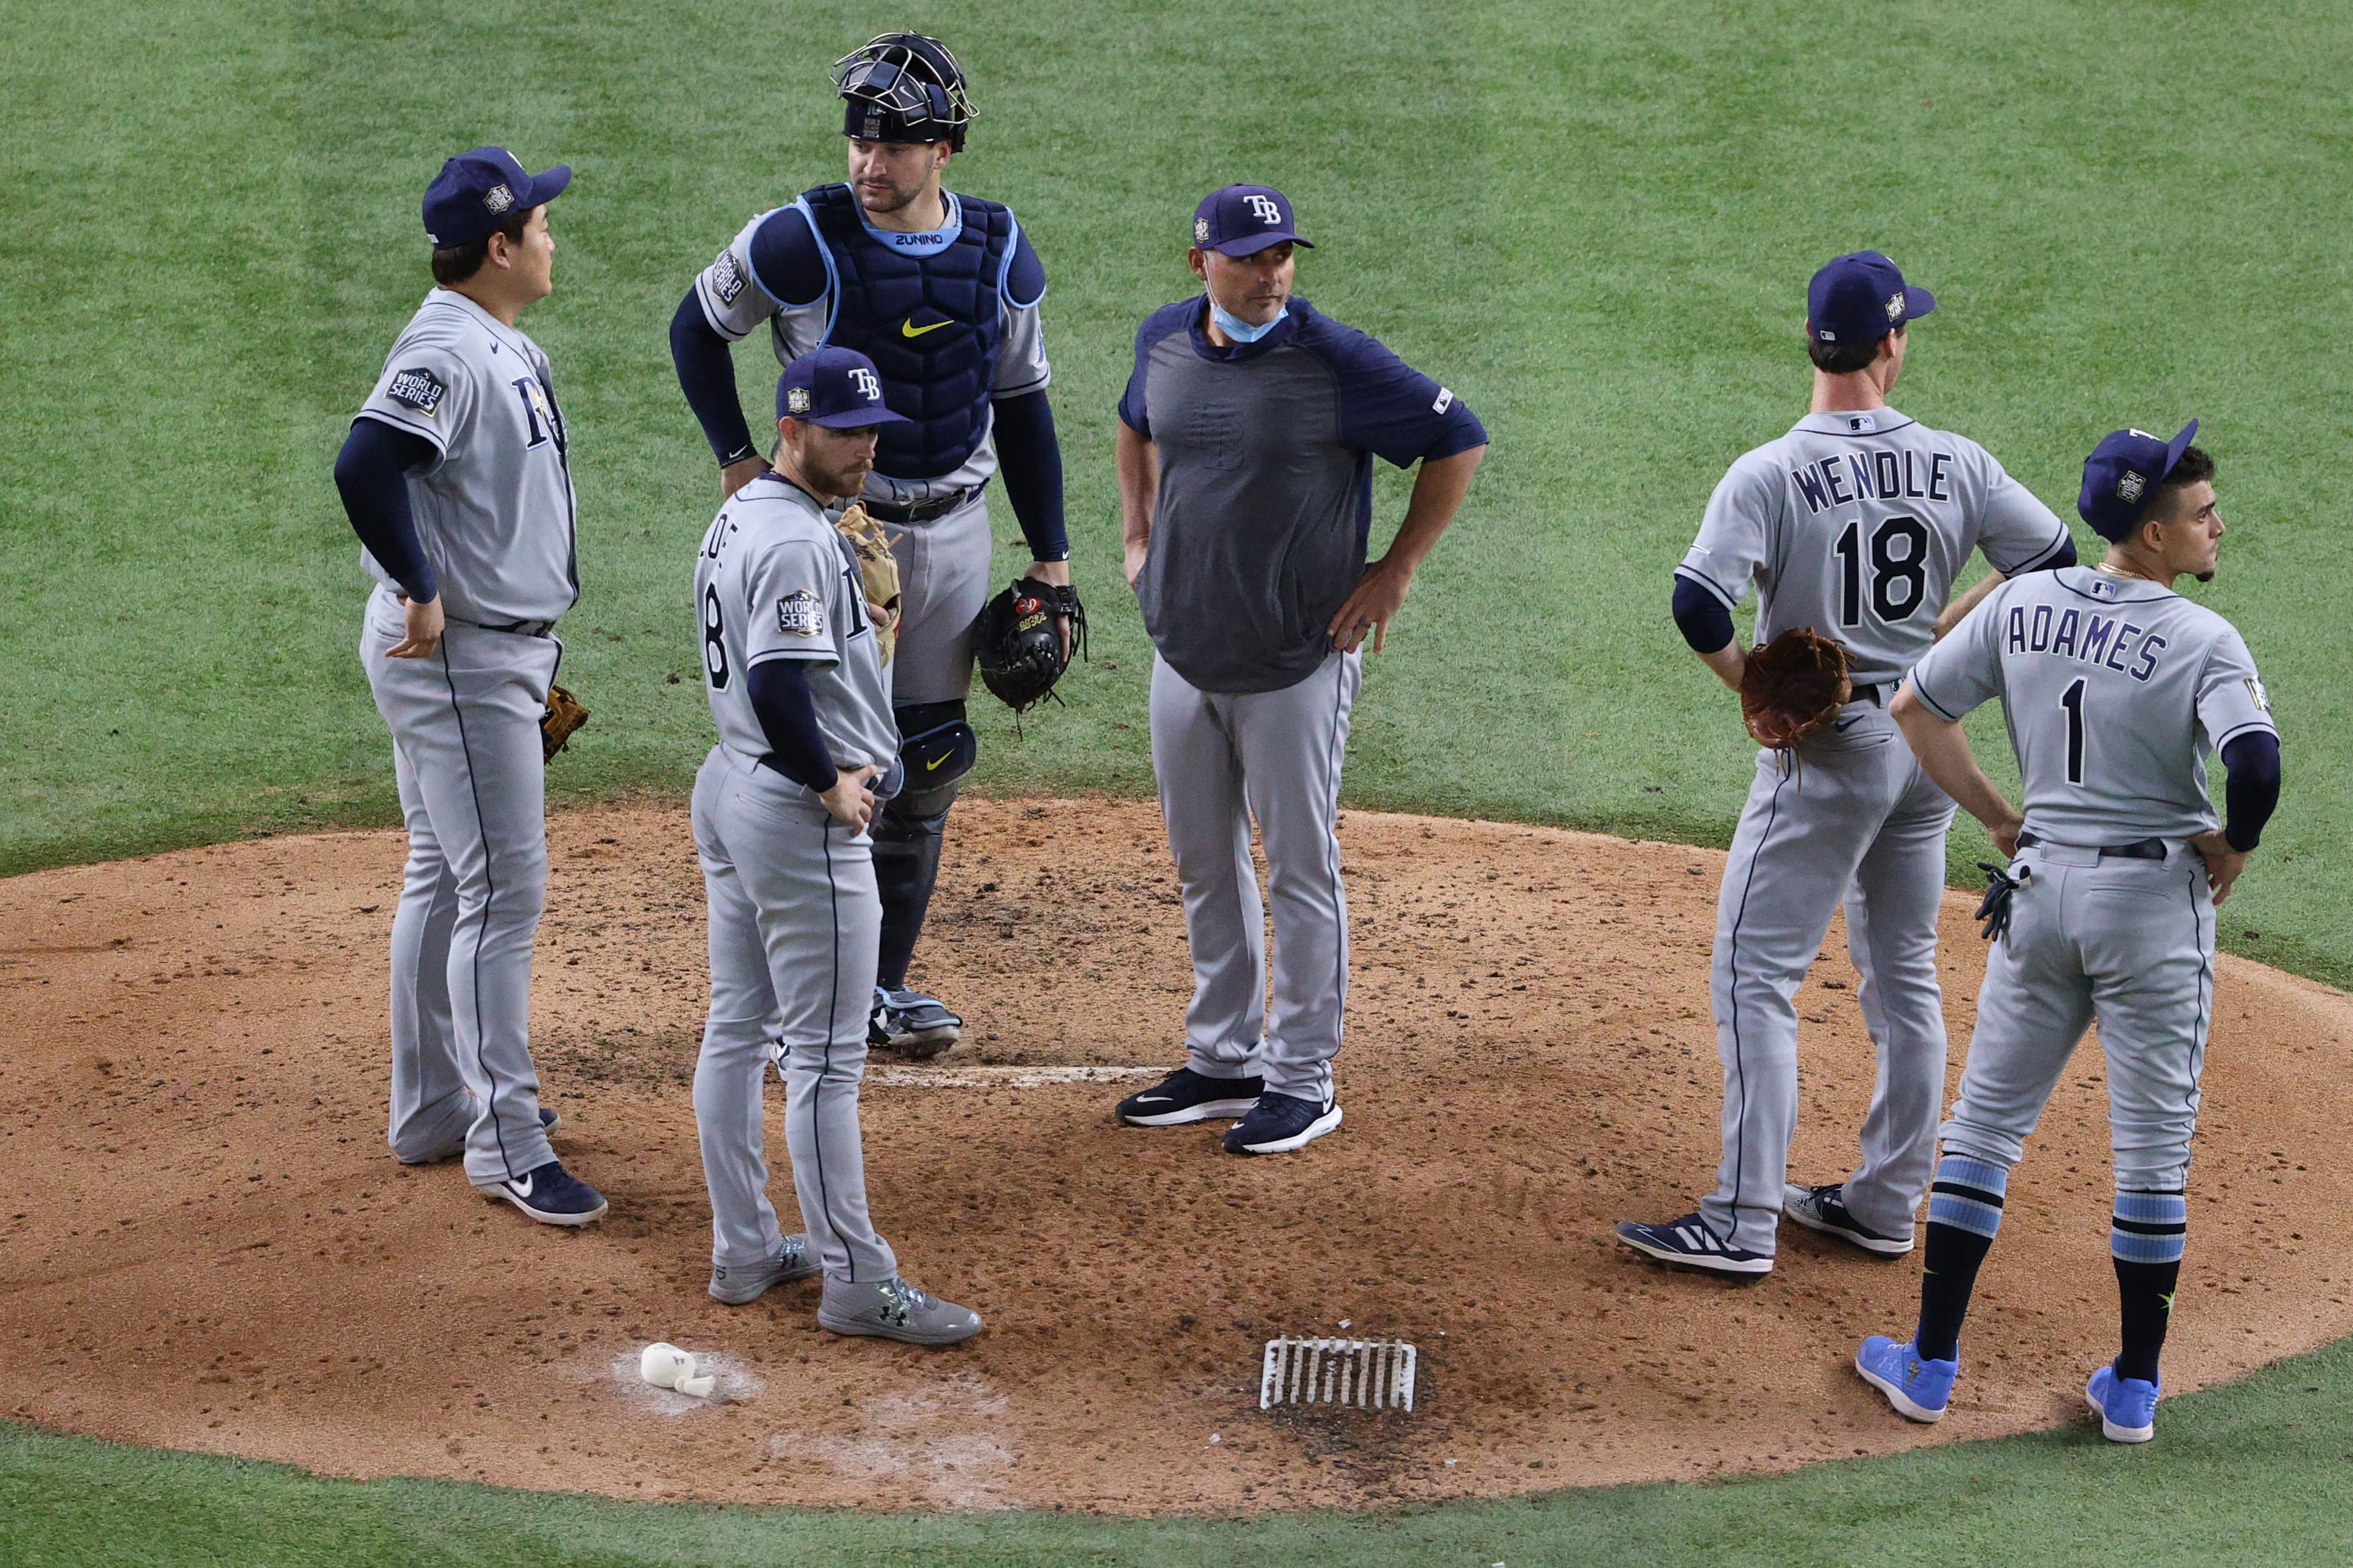 Kevin Cash and the Rays infield stand on the mound and wait for the new pitcher.